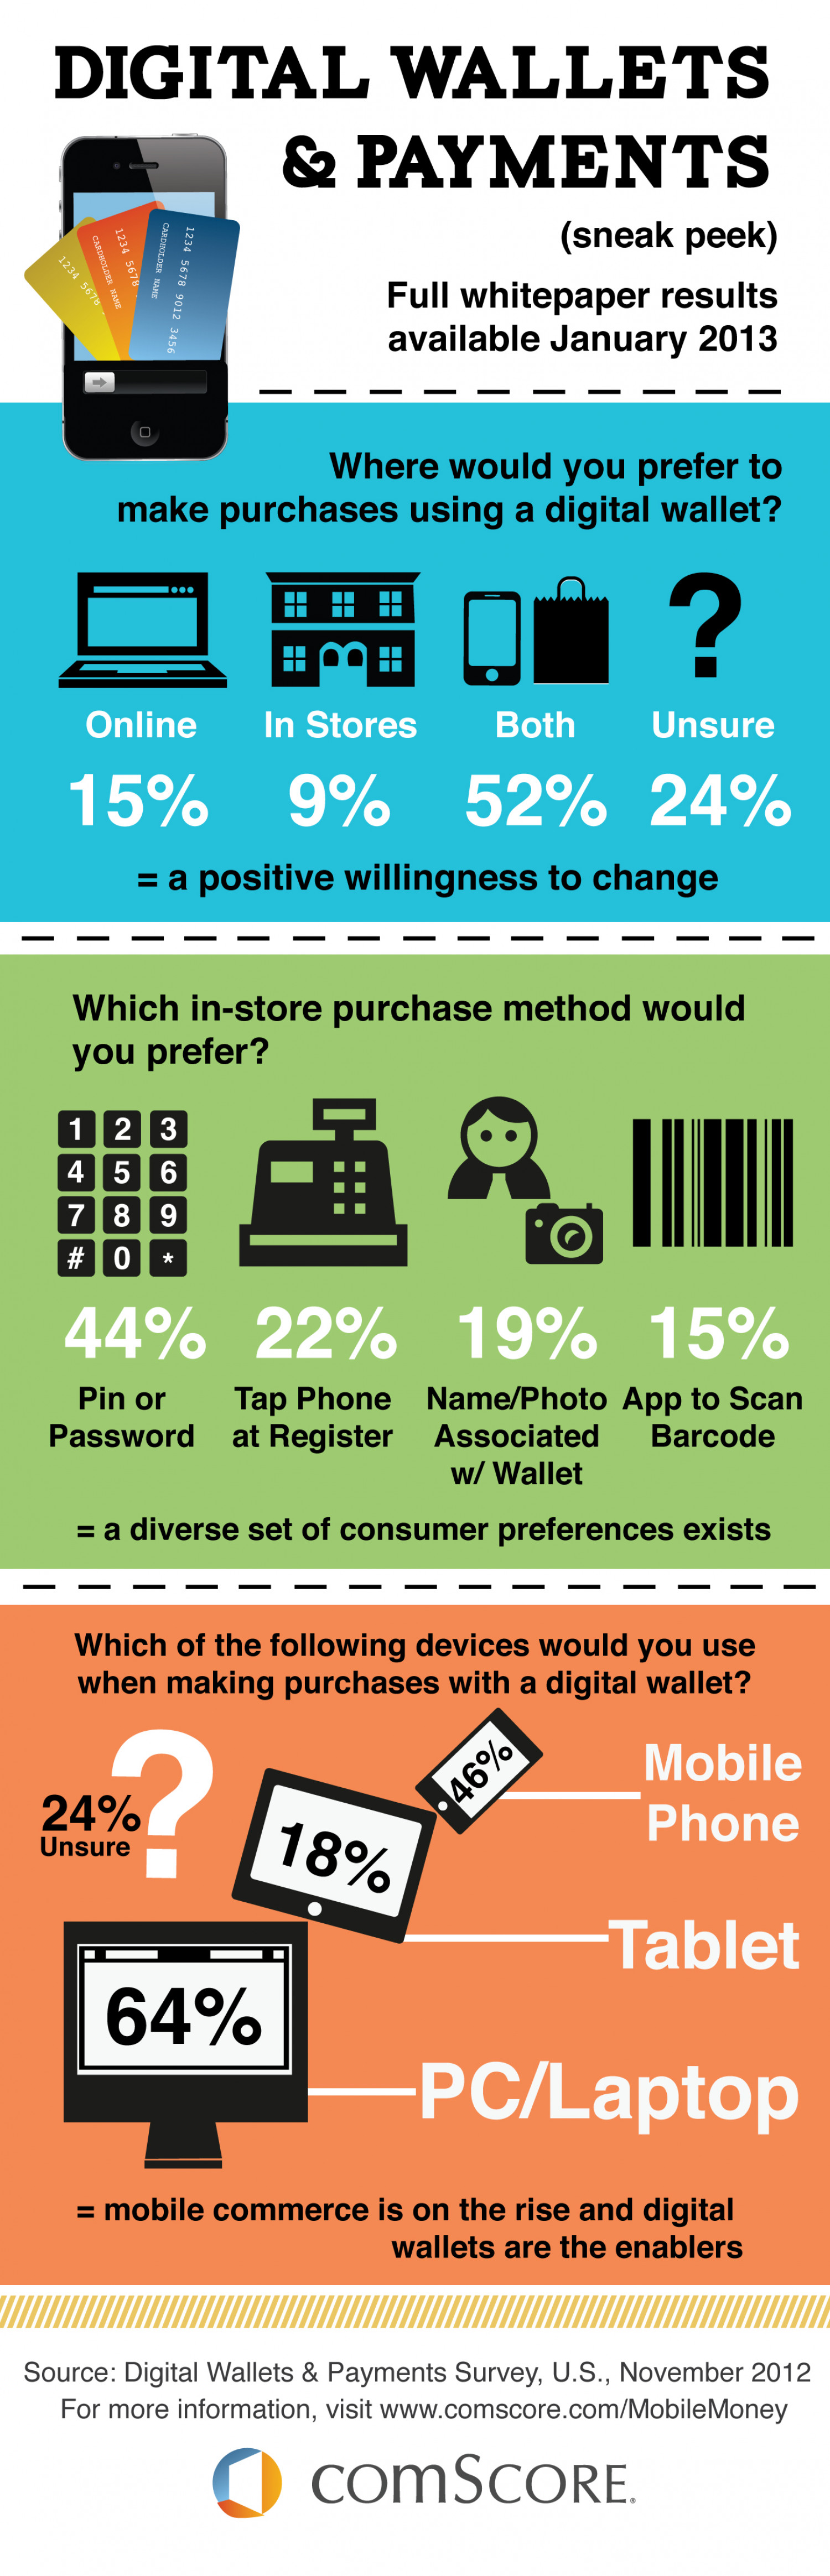 2013 Digital Wallets & Payments Sneak Peek Infographic